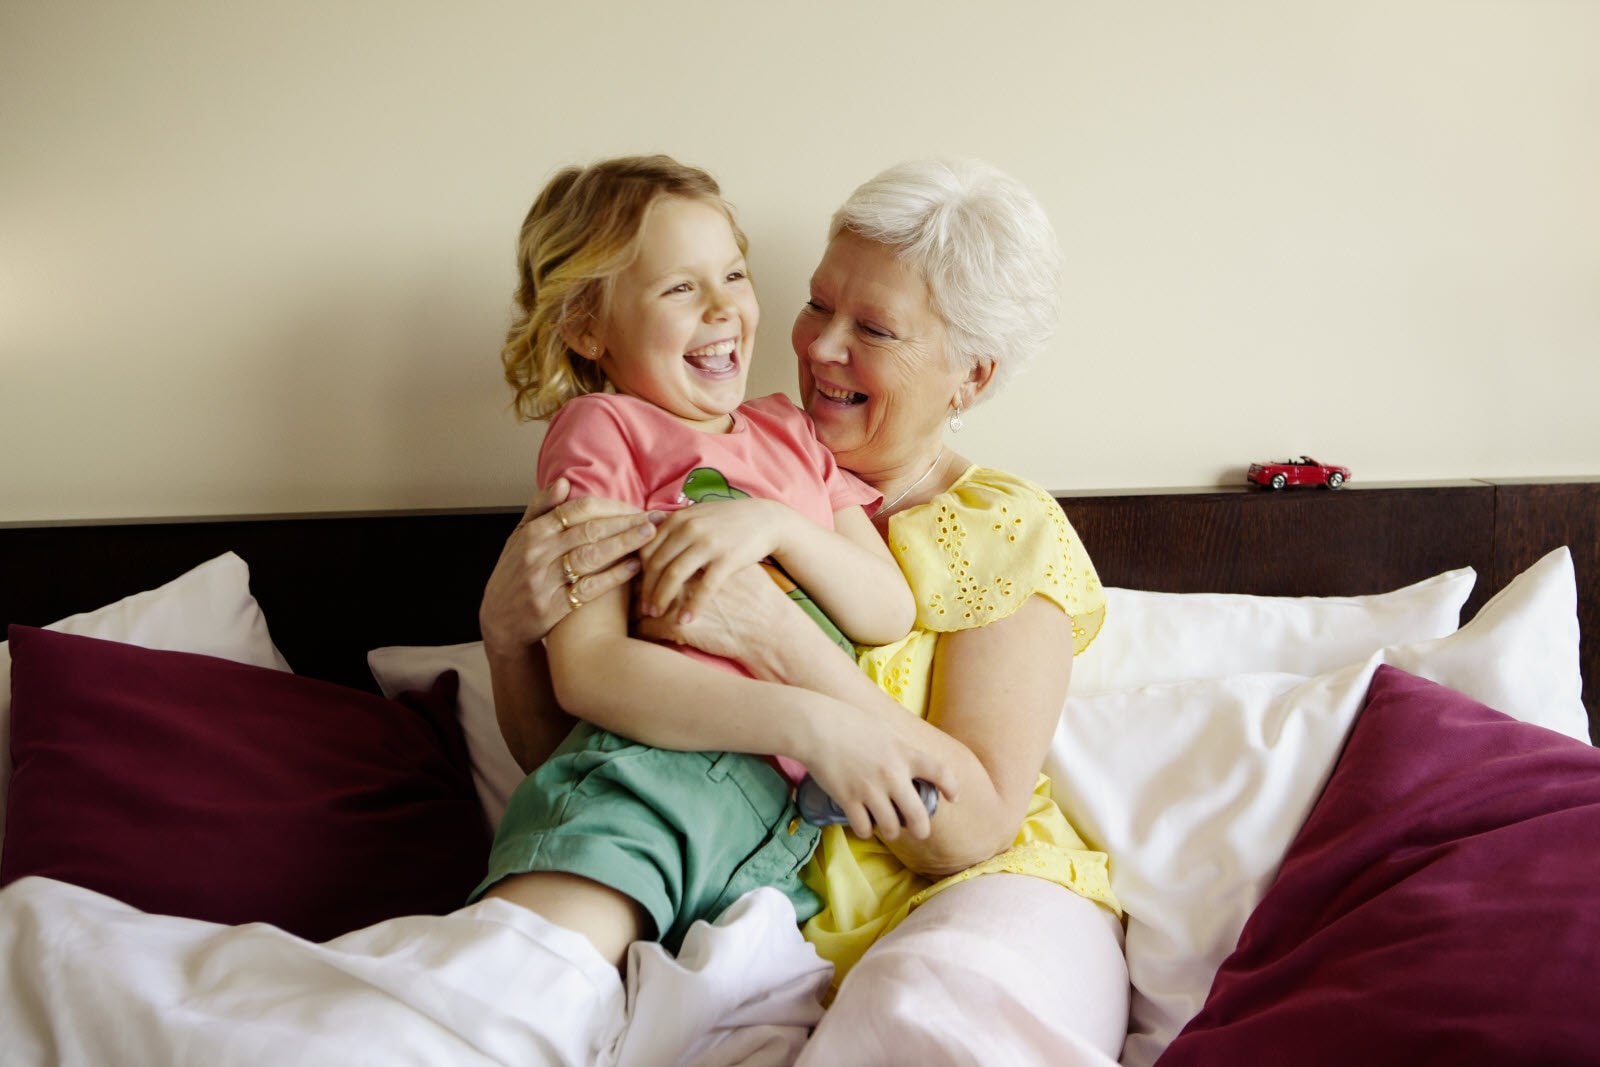 ccc-people-family-grandmother-children-kids-bed-pl.jpg